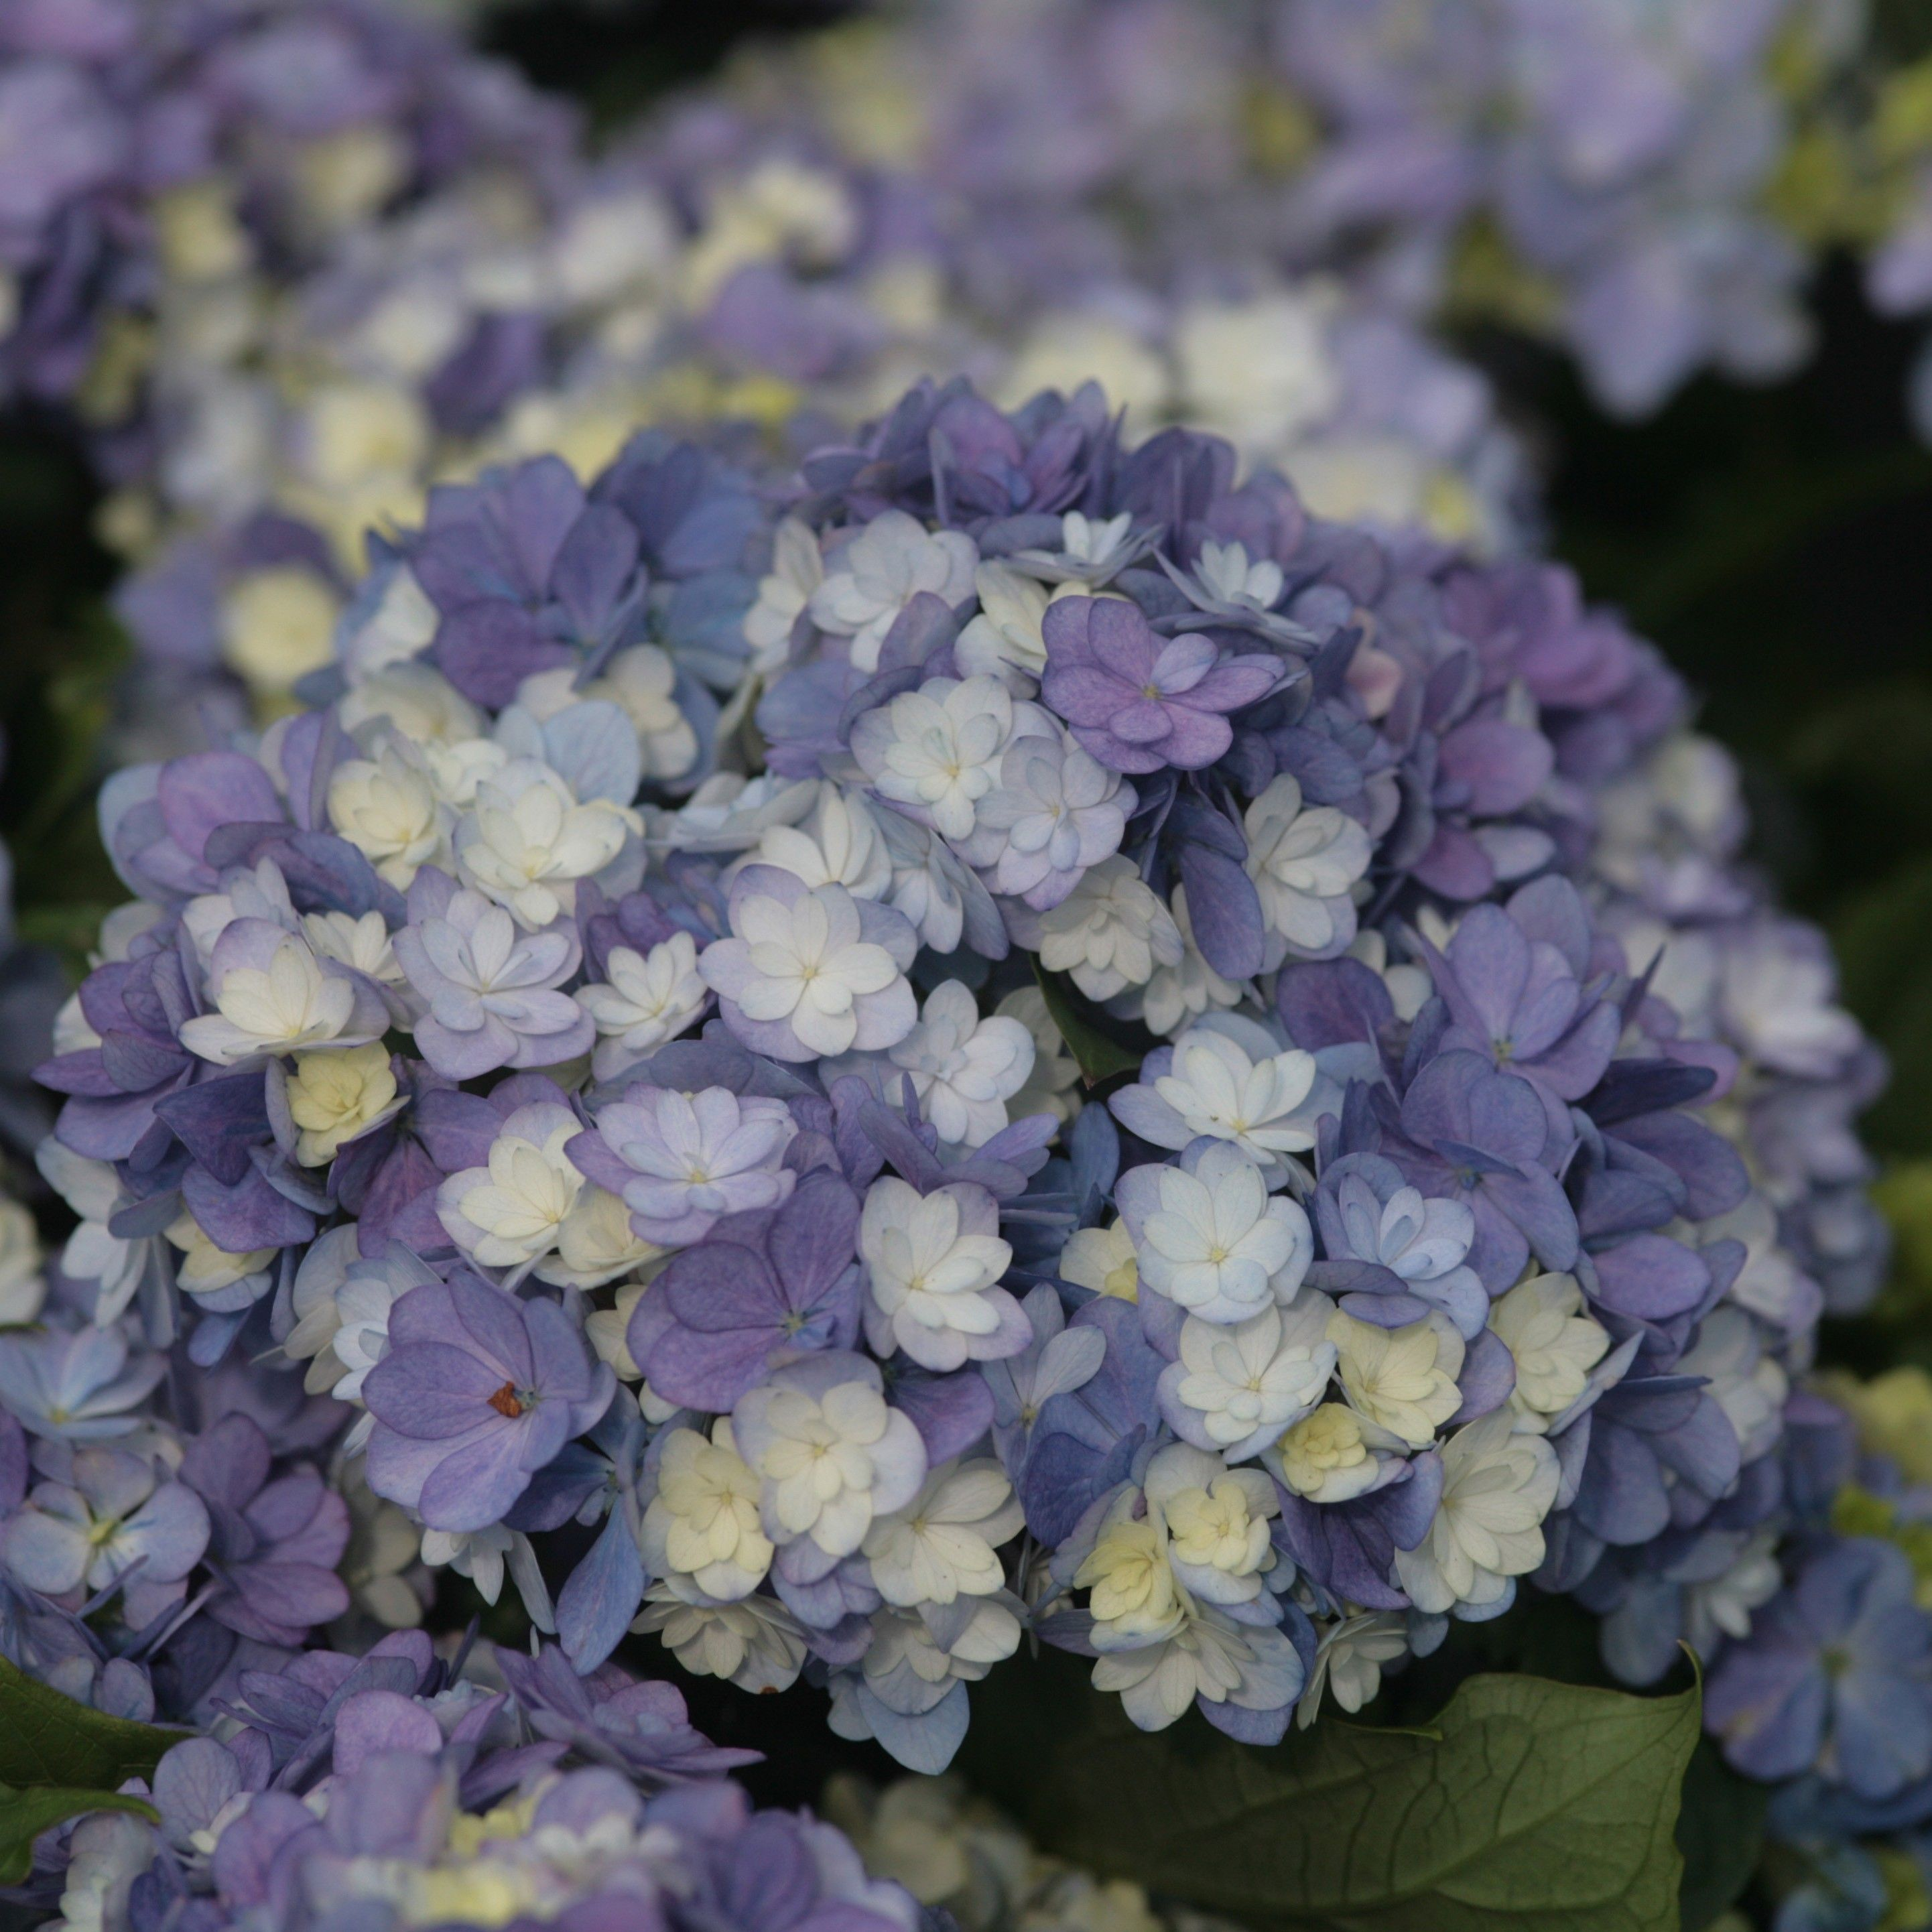 Hortensia - Hydrangea macrophylla You and Me Tea Time Together